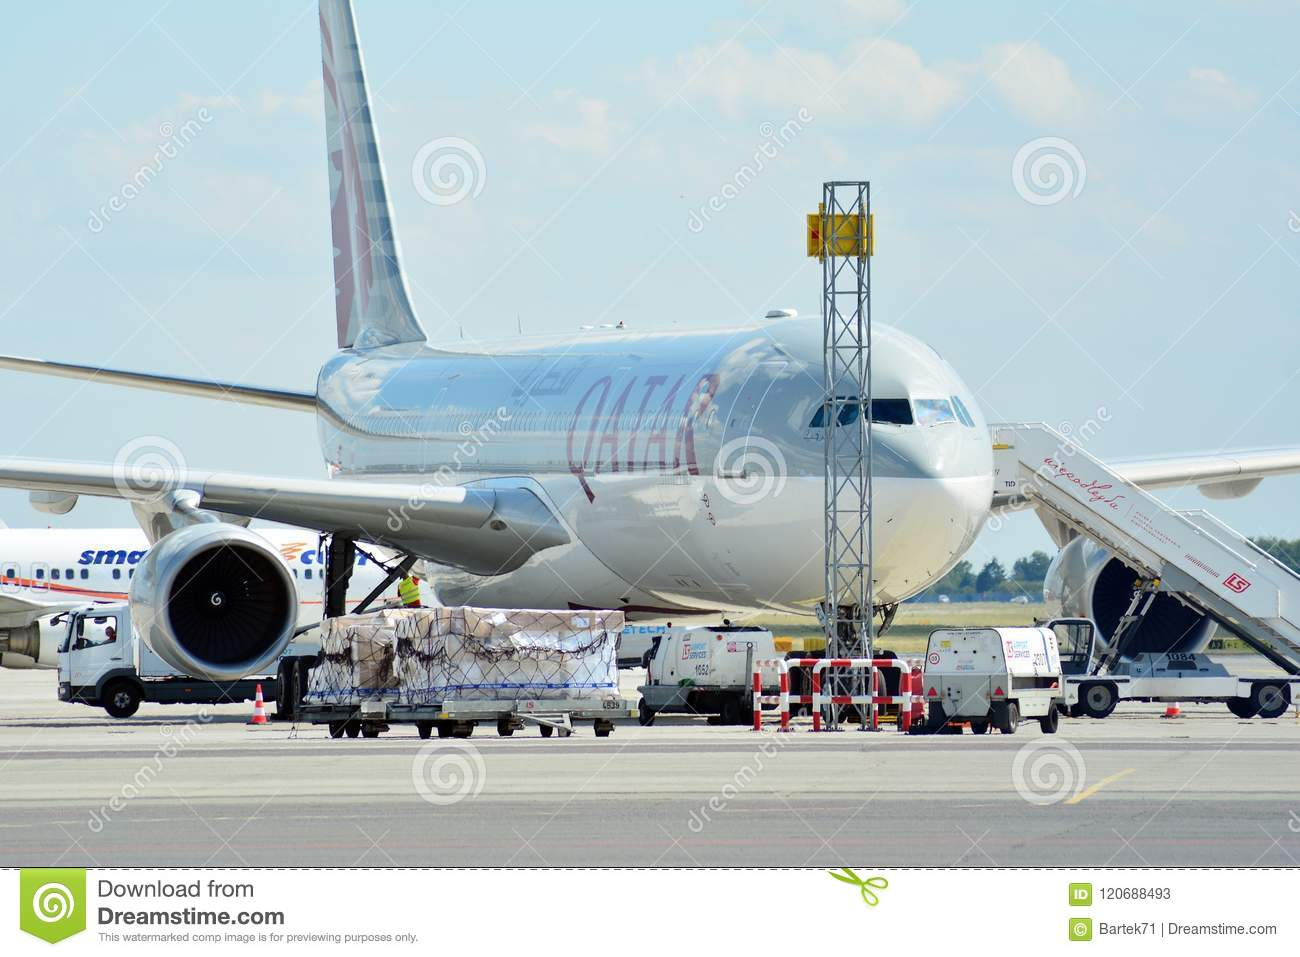 A7-AEC Qatar Airways Airbus A330-302 . The plane at the airport on loading at the airport in Chopin airport